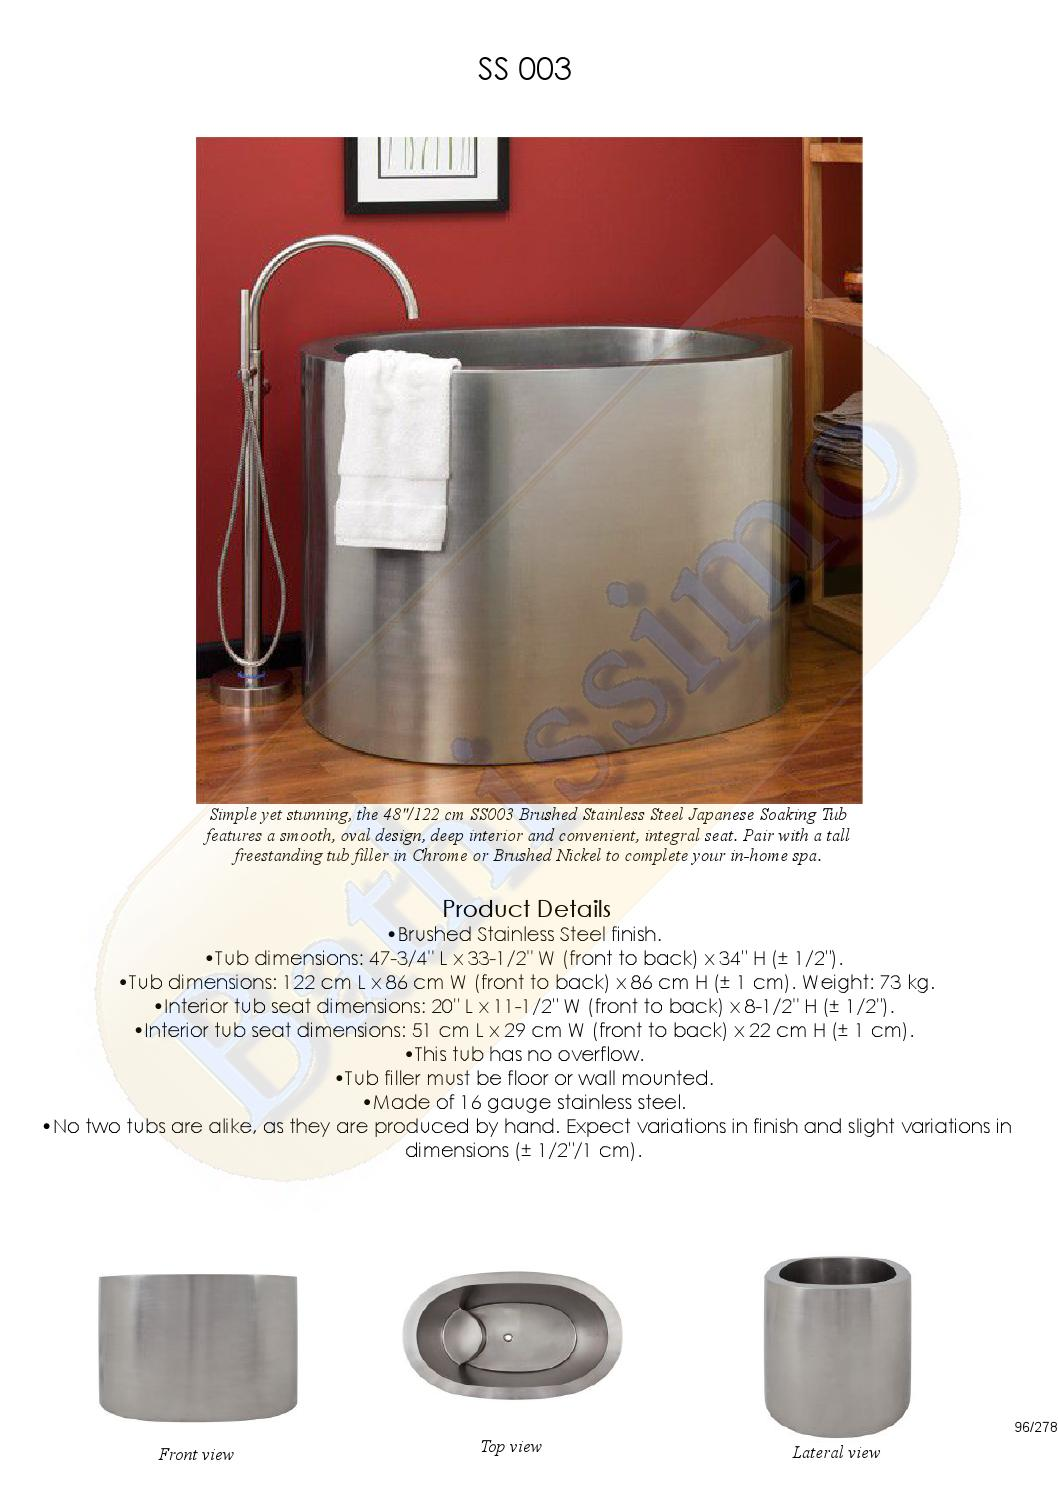 Bathissimo Copper Tubs By Compania Ballenita 98 S L Issuu